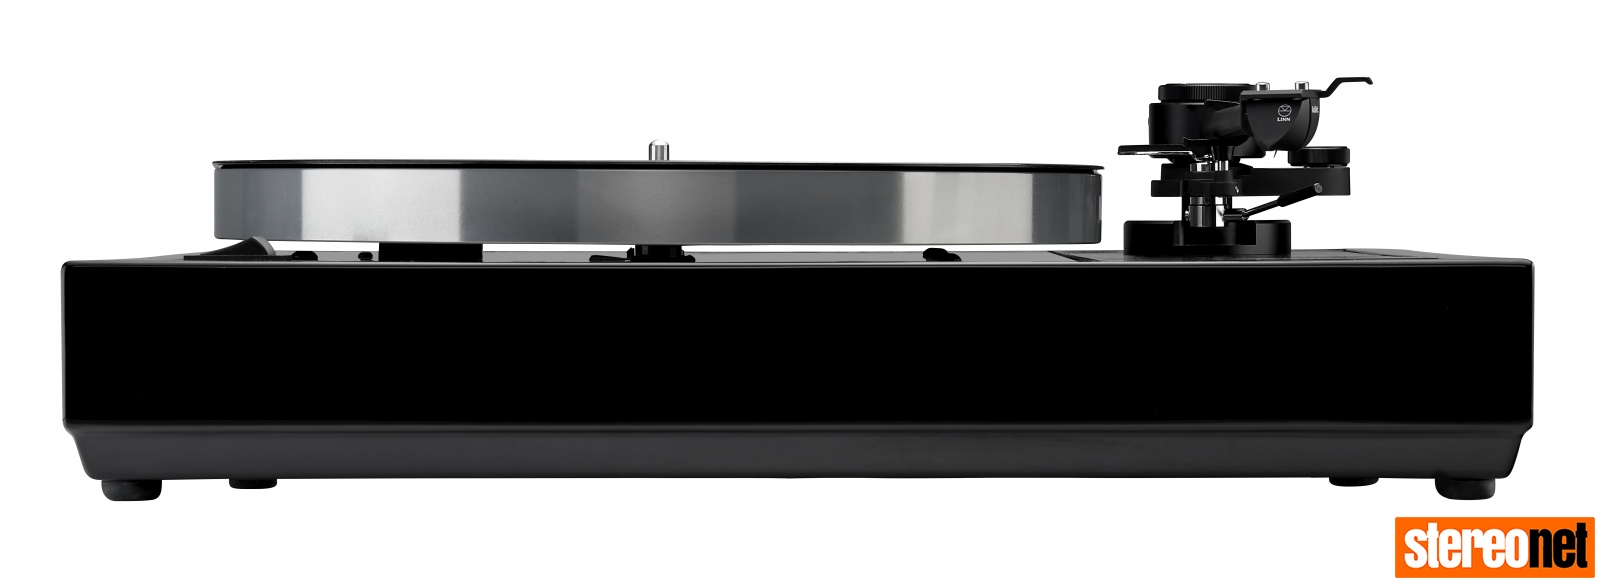 Linn LP12 Majik Limited Edition Piano Black Turntable